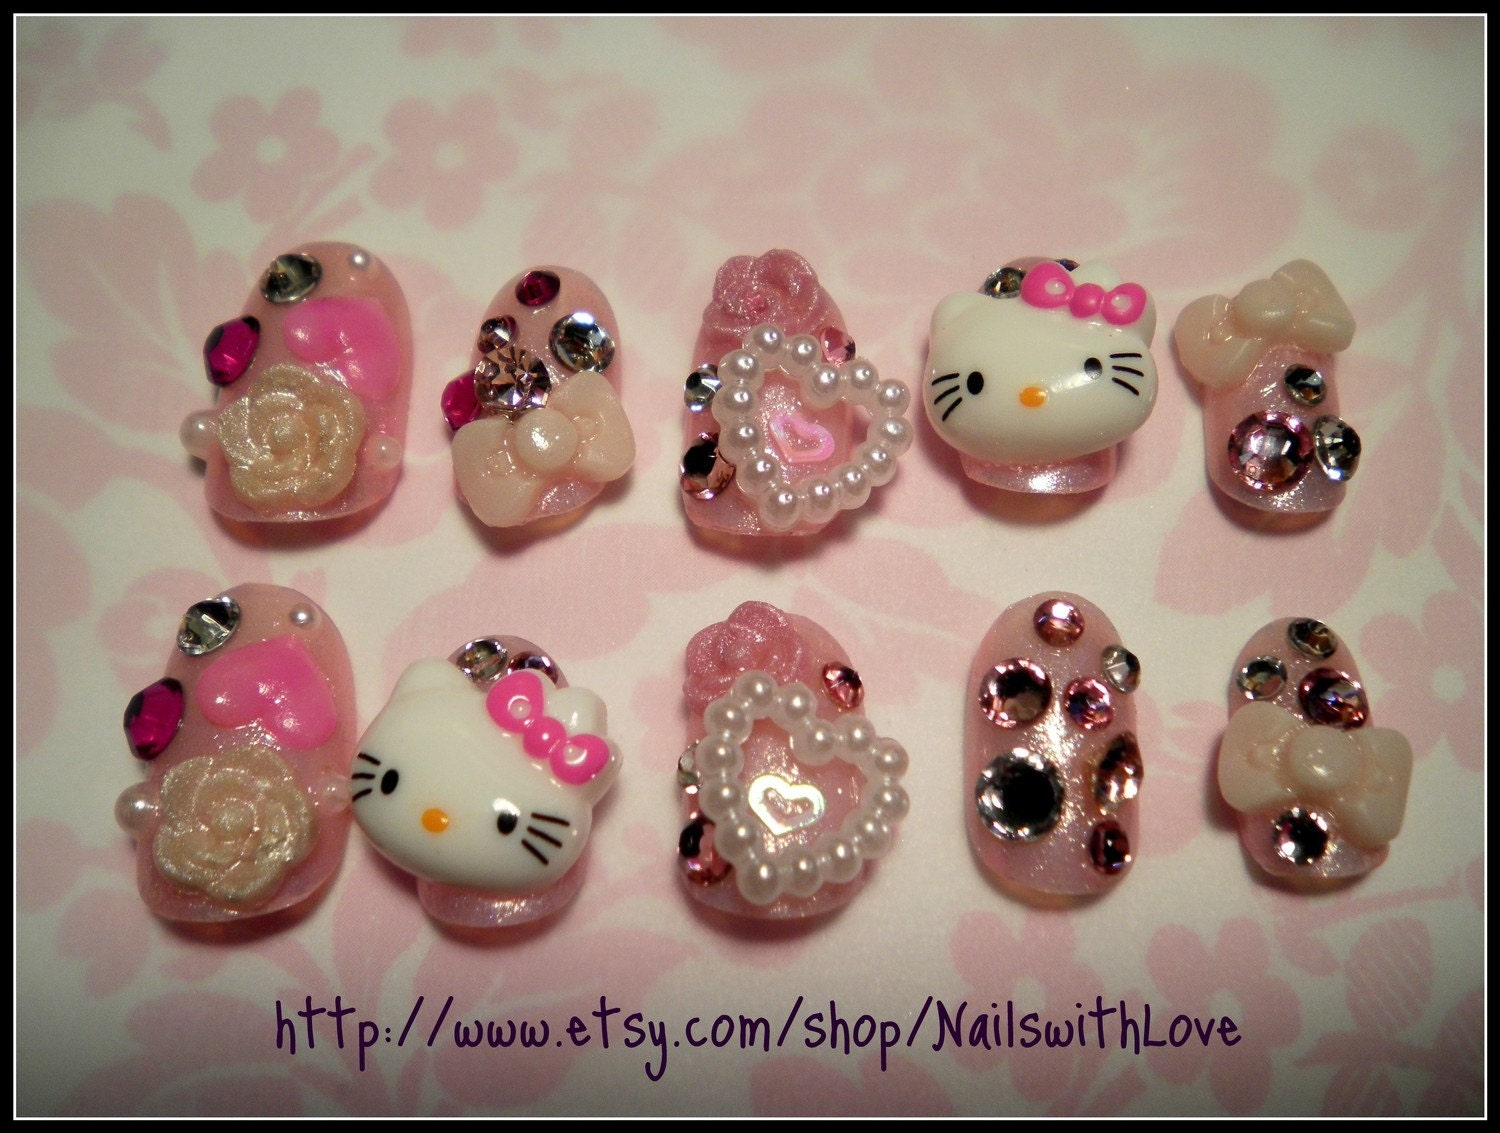 Japanese 3D Press on Nail Art Big Hello Kitty by NailswithLove